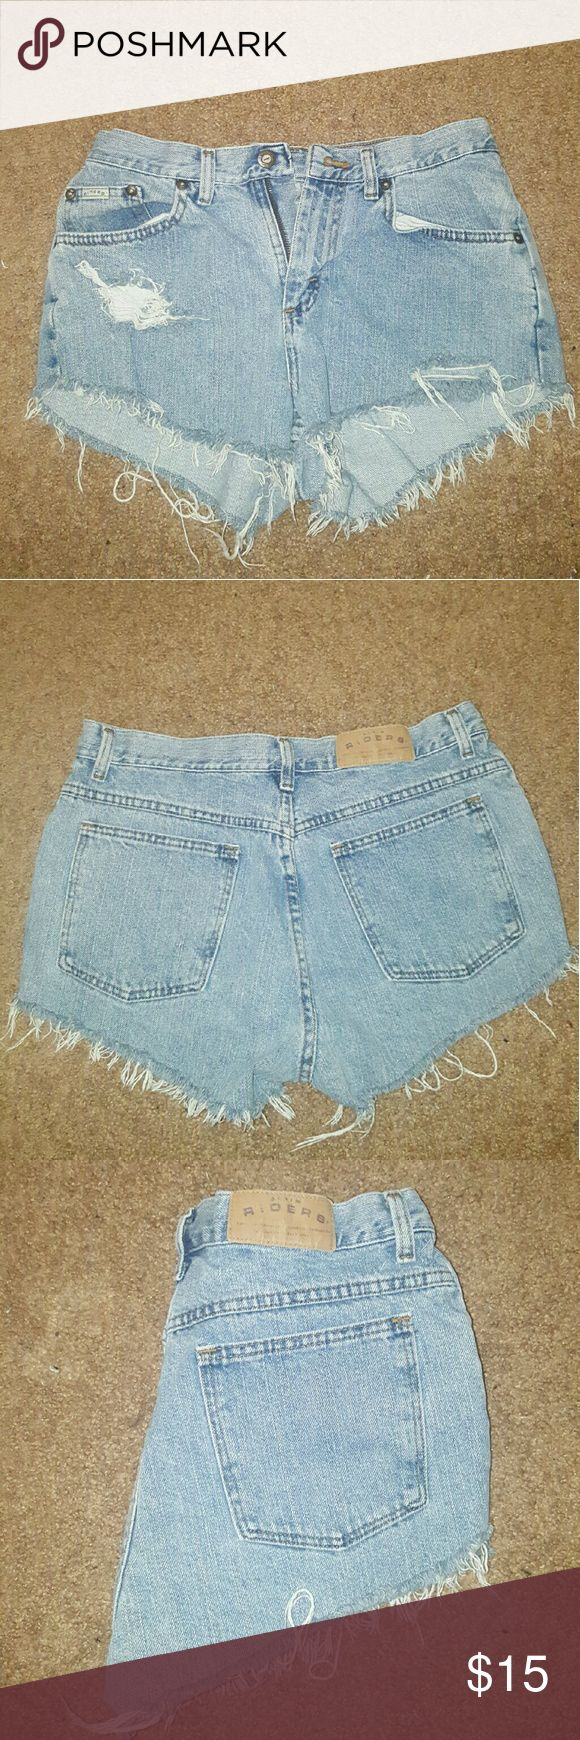 Homemade highwaisted shorts Homemade shorts. Blue wash. Original size 10 mom Jeans, fits me around my waist at 28 inches! High wasited! riders Shorts Jean Shorts